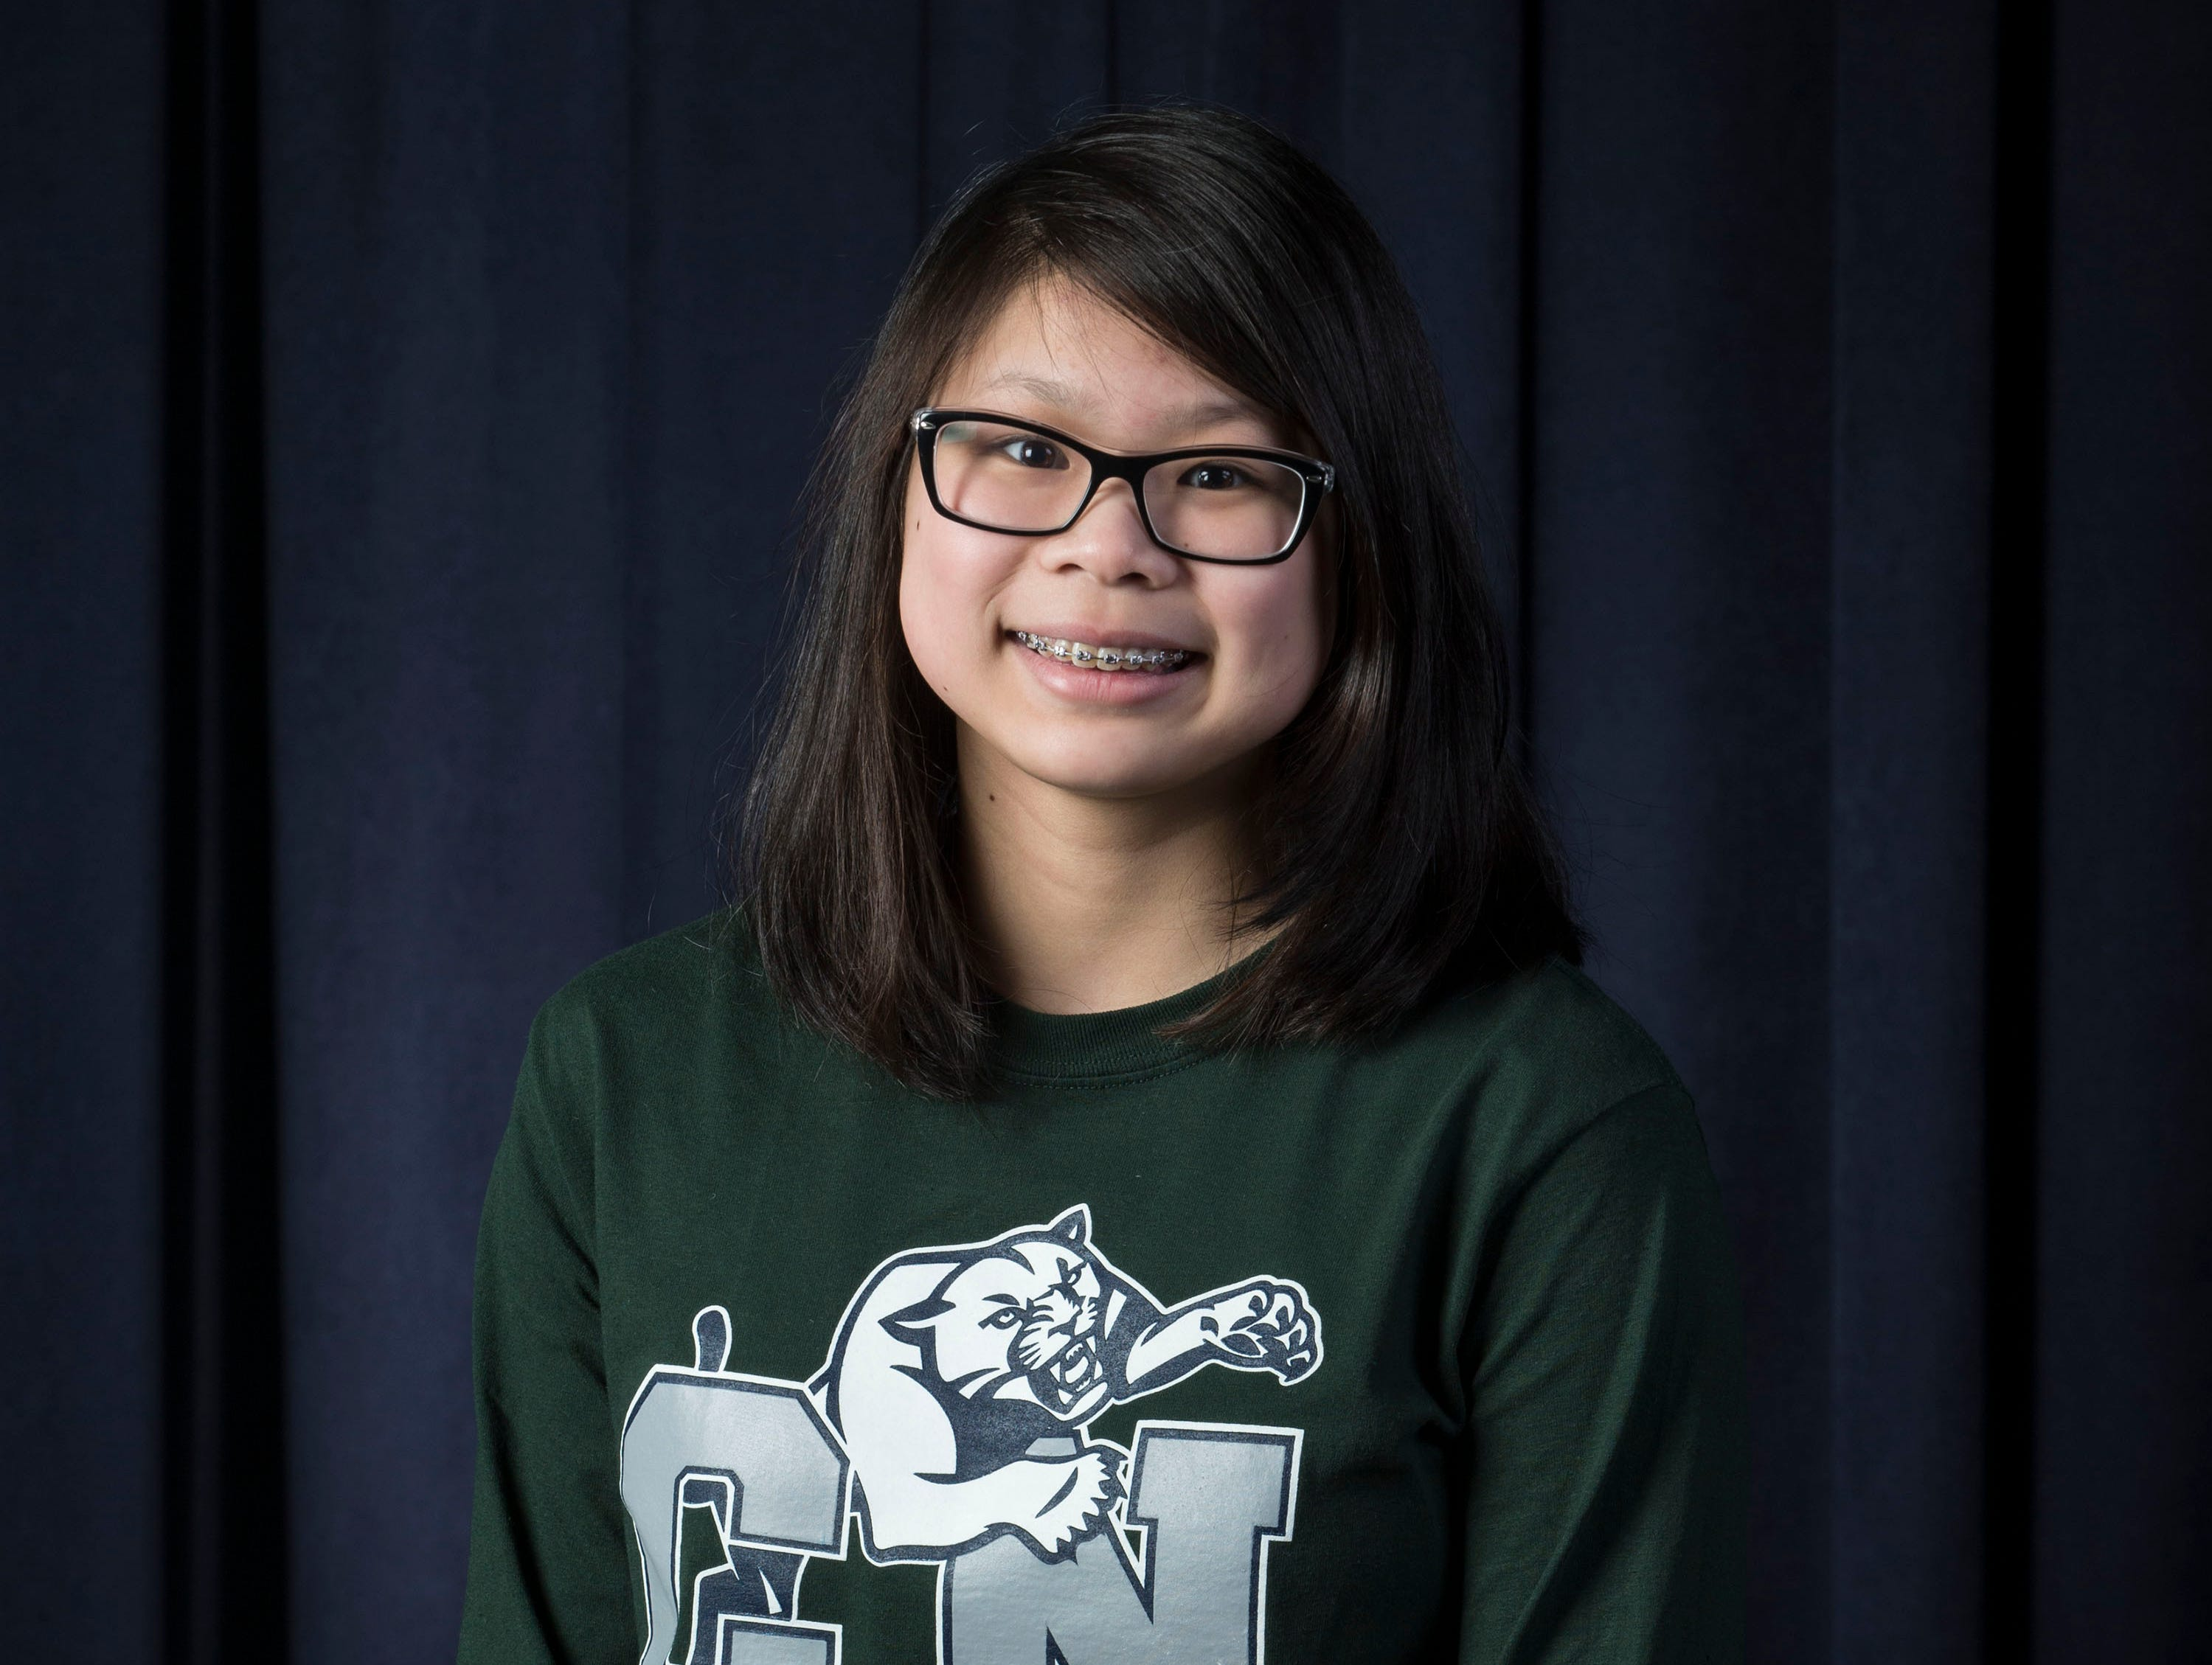 The 2019 All-Shore Girls Swim Team- Arabella Lee of Colts Neck